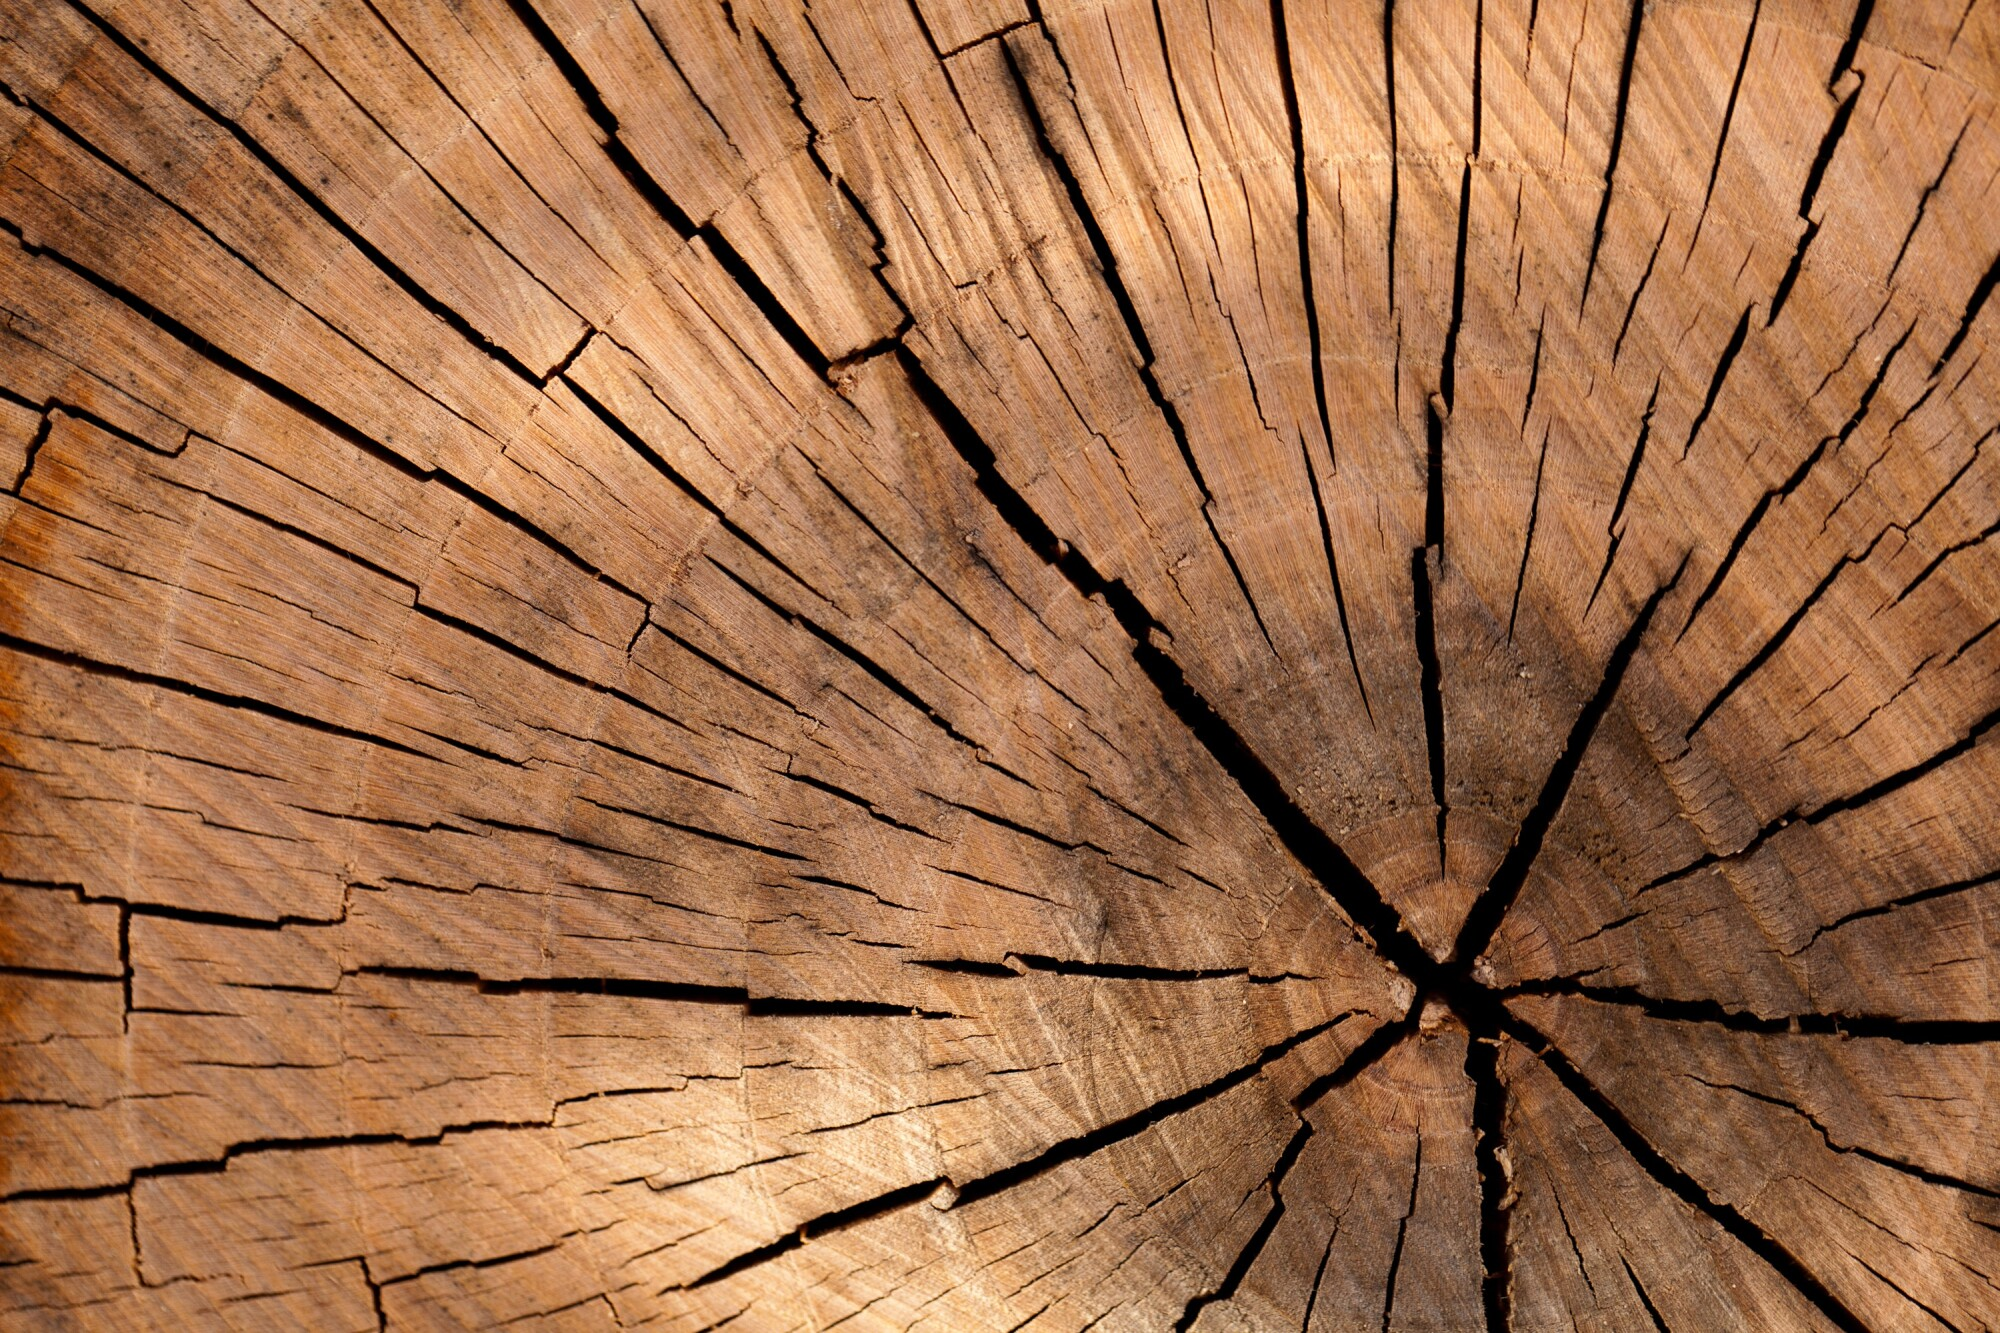 high lumber prices caused from shortage of lumber